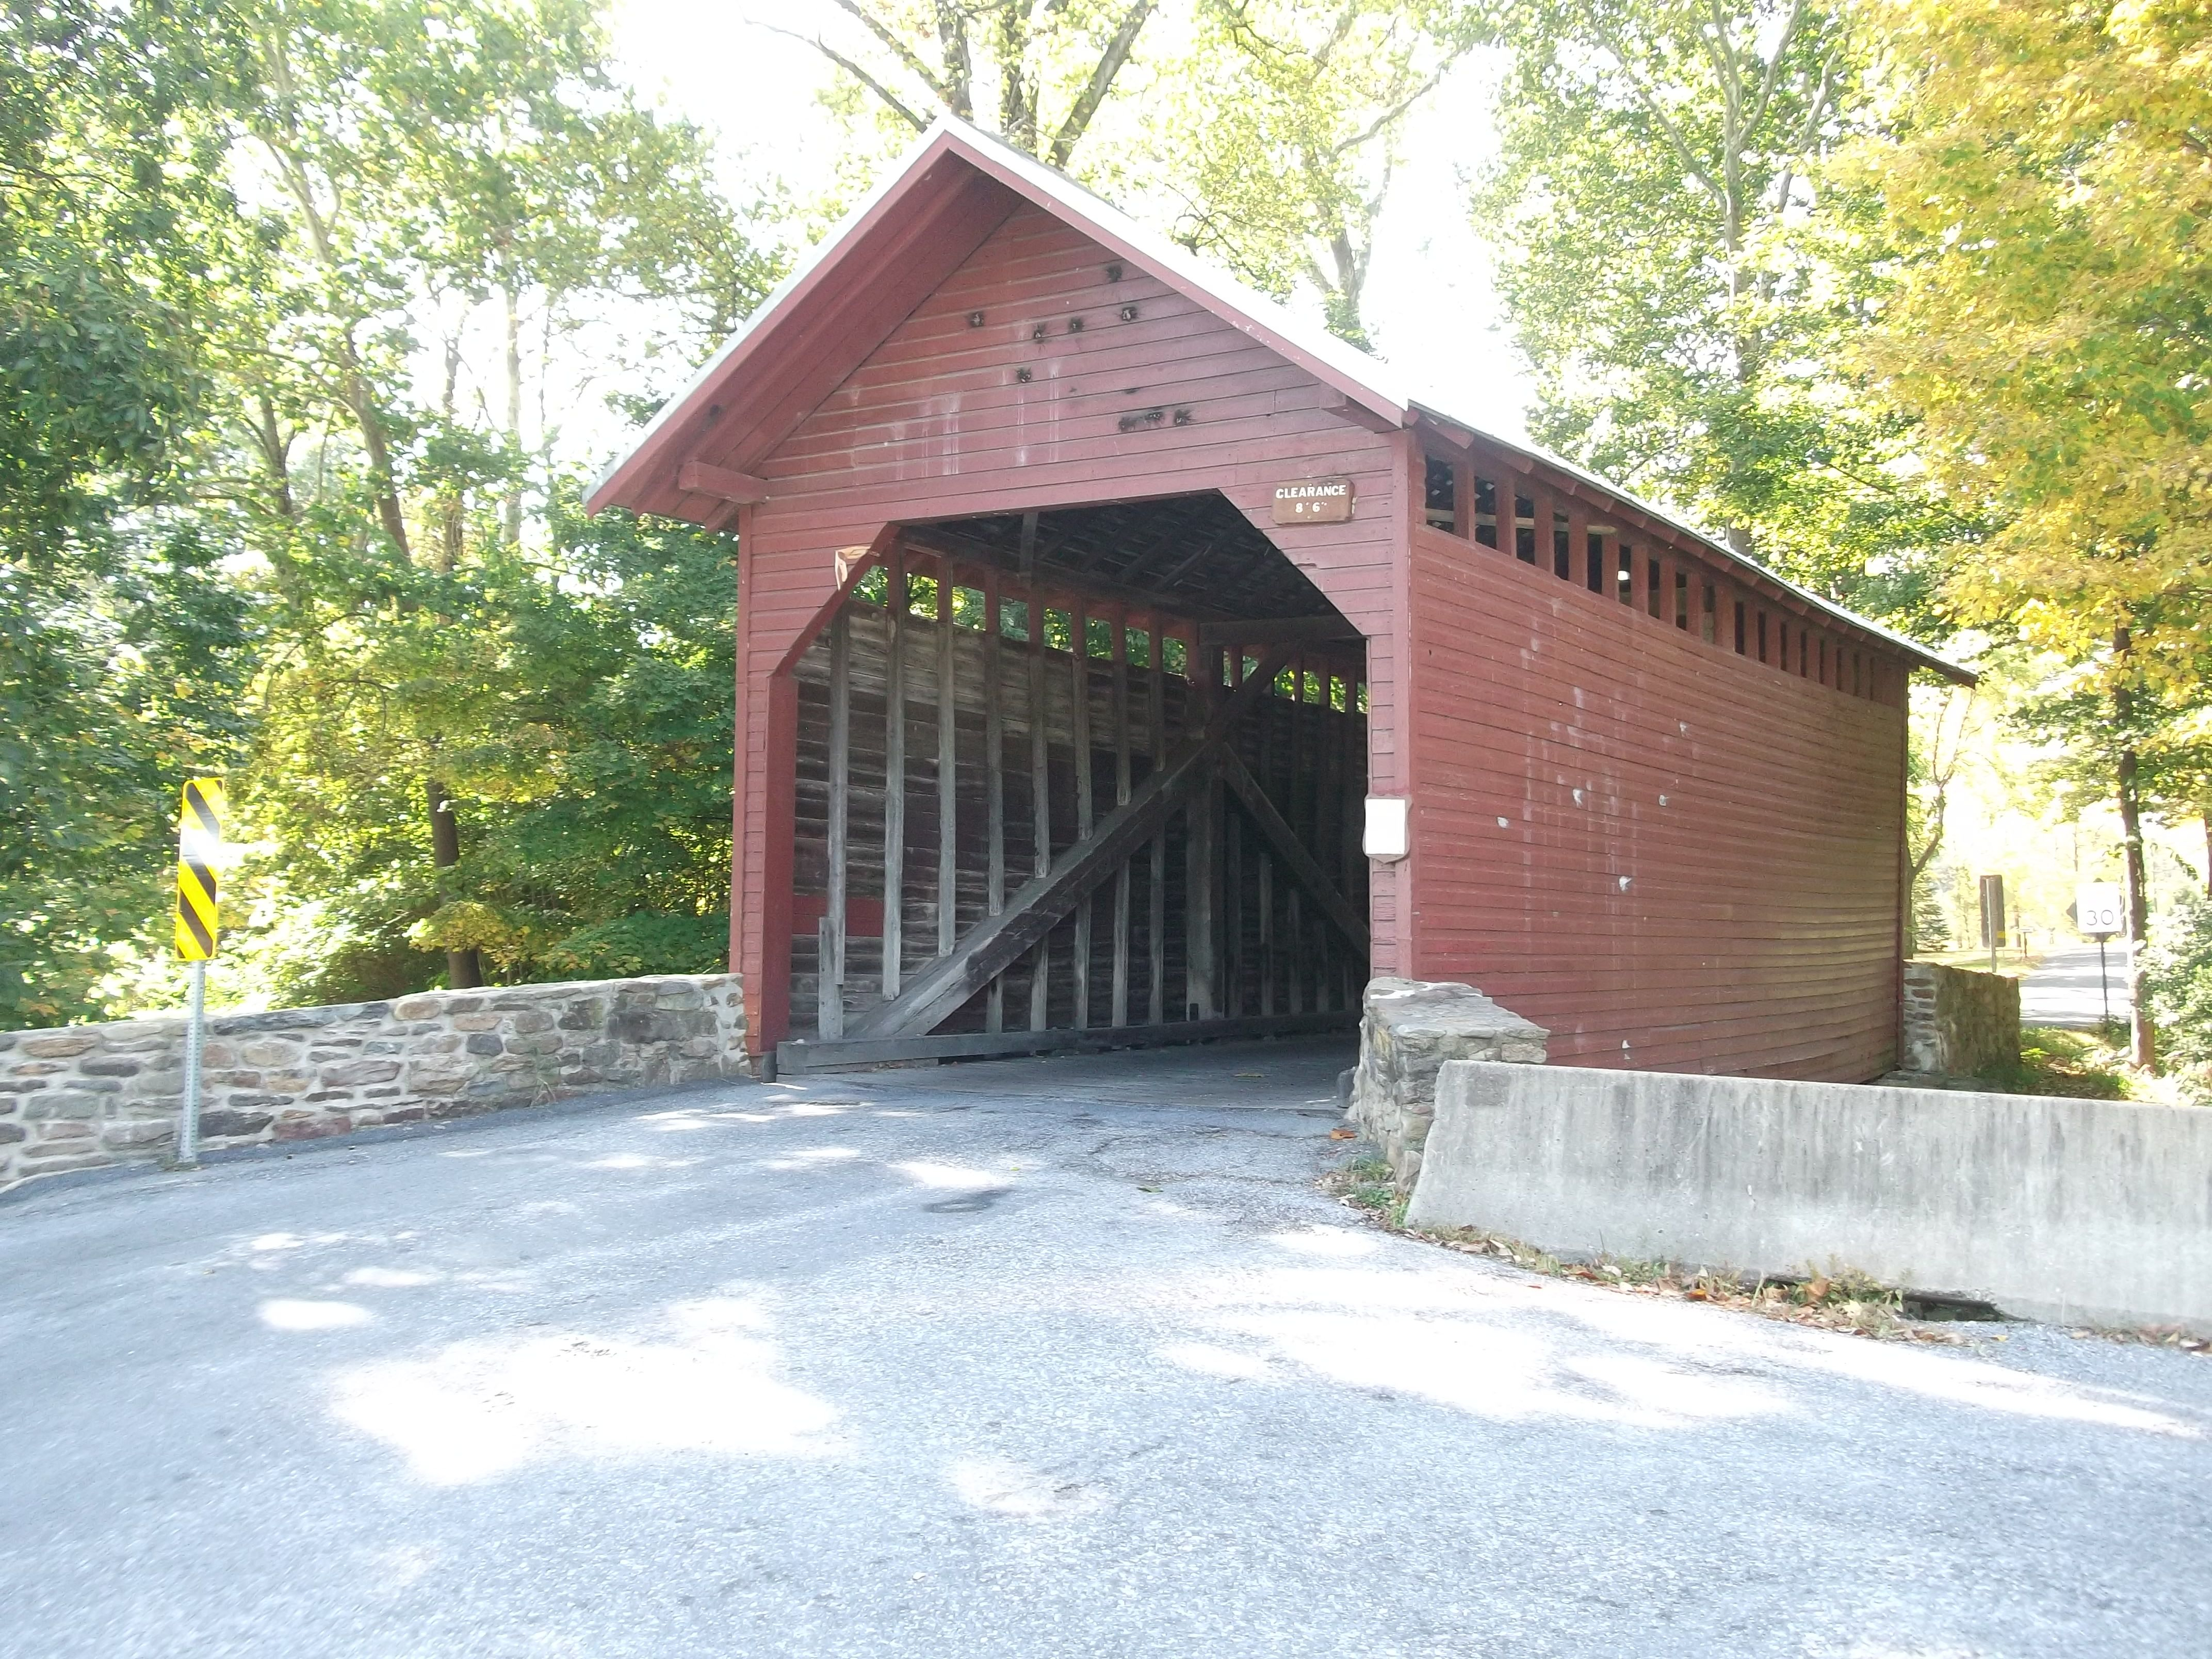 Roddy Road Covered Bridge In Frederick Maryland Owens Creek Photo By Debra Short Covered Bridges Around The Worlds Places